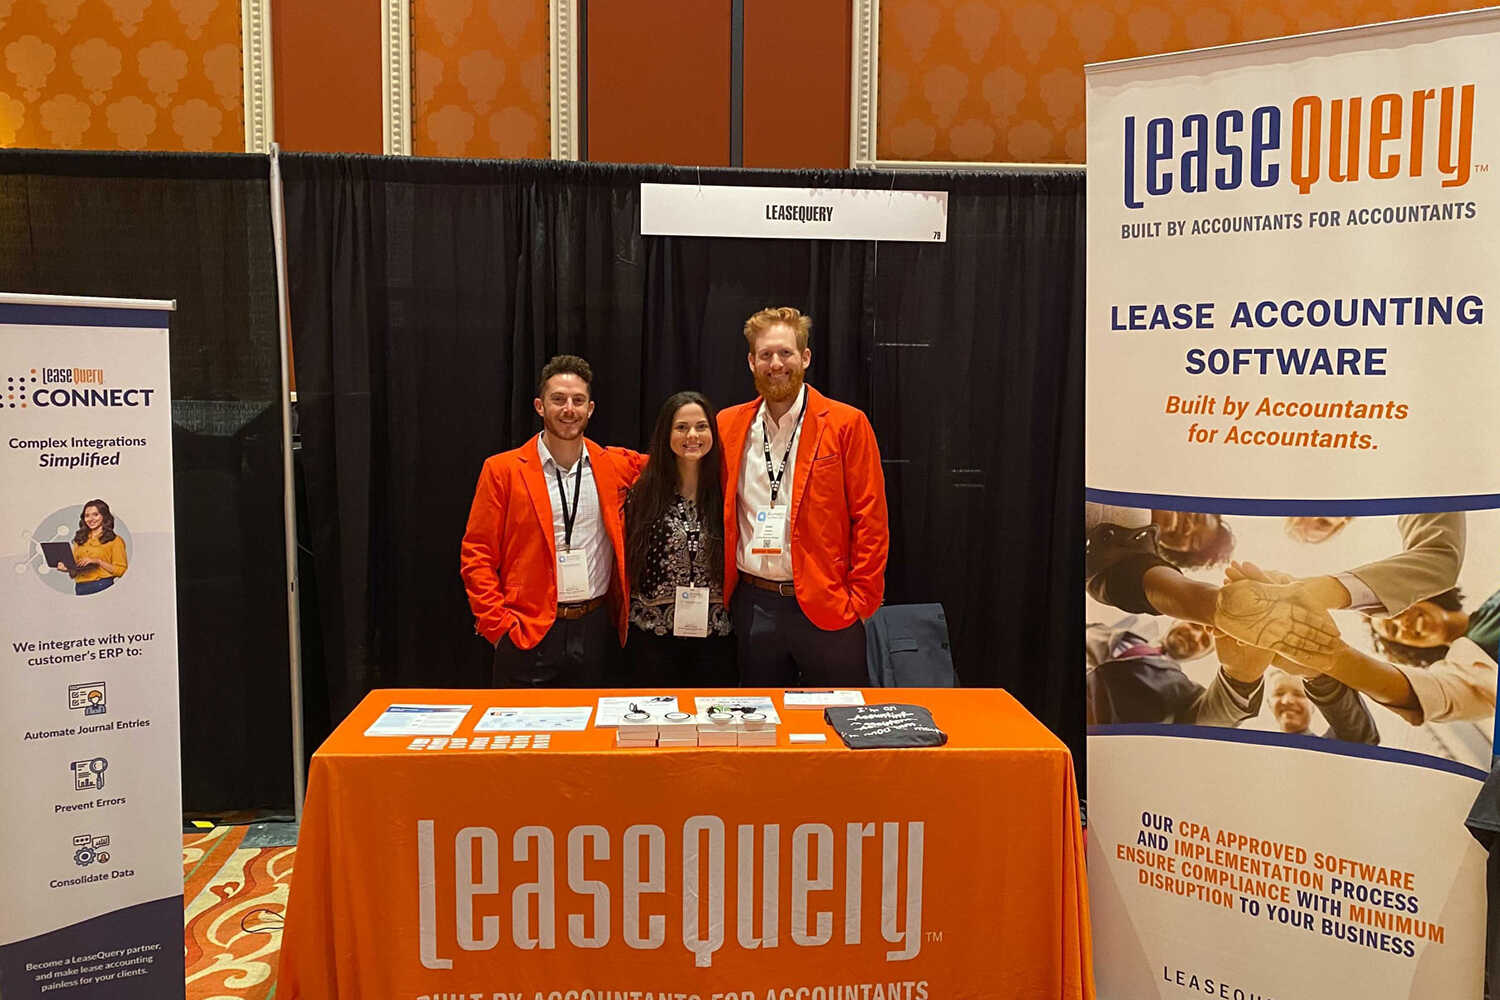 Driver behind LeaseQuery's Success - Culture of Celebrating Small Wins-Image#3